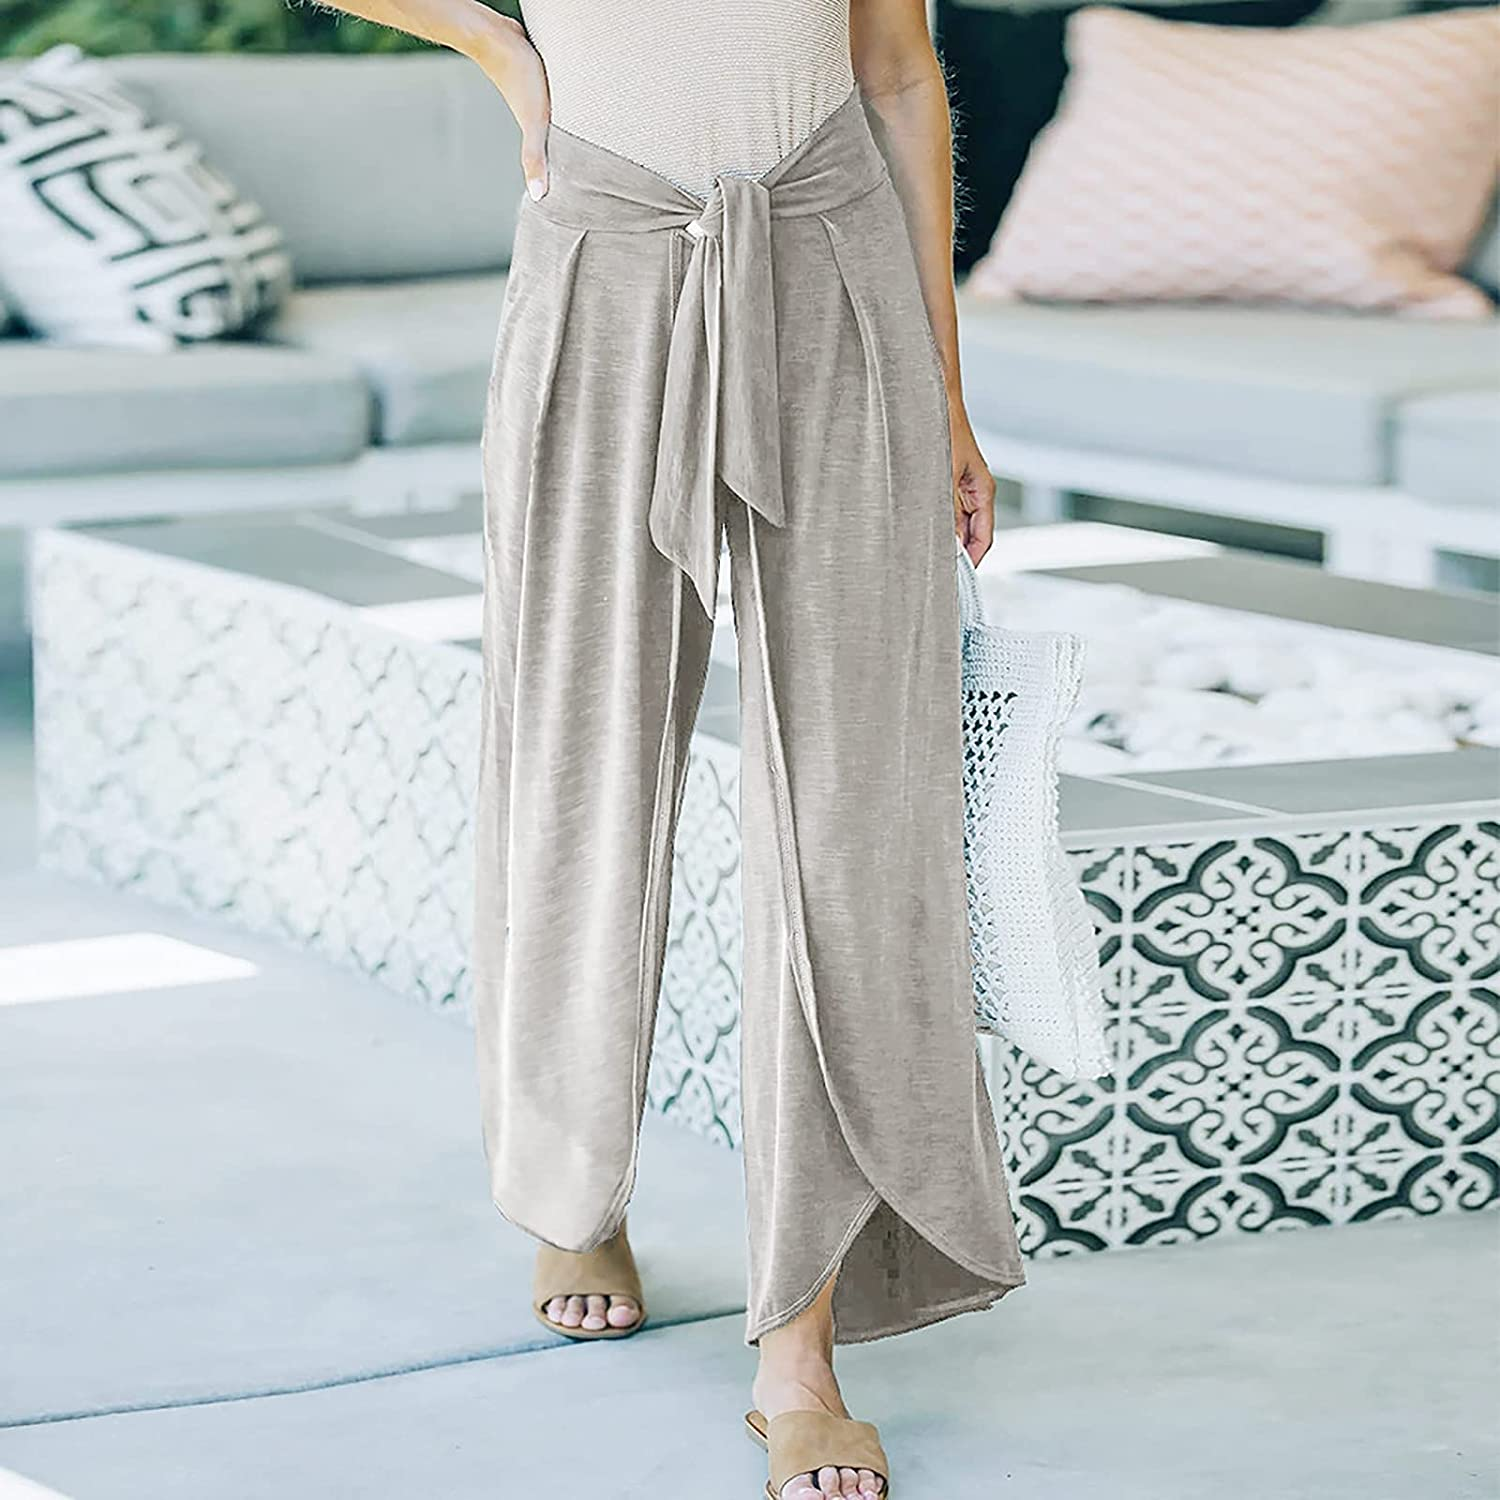 Misaky Women Casual Solid Boho Palazzo Pants Loose Knit Belt Tie Casual Knitted Trousers